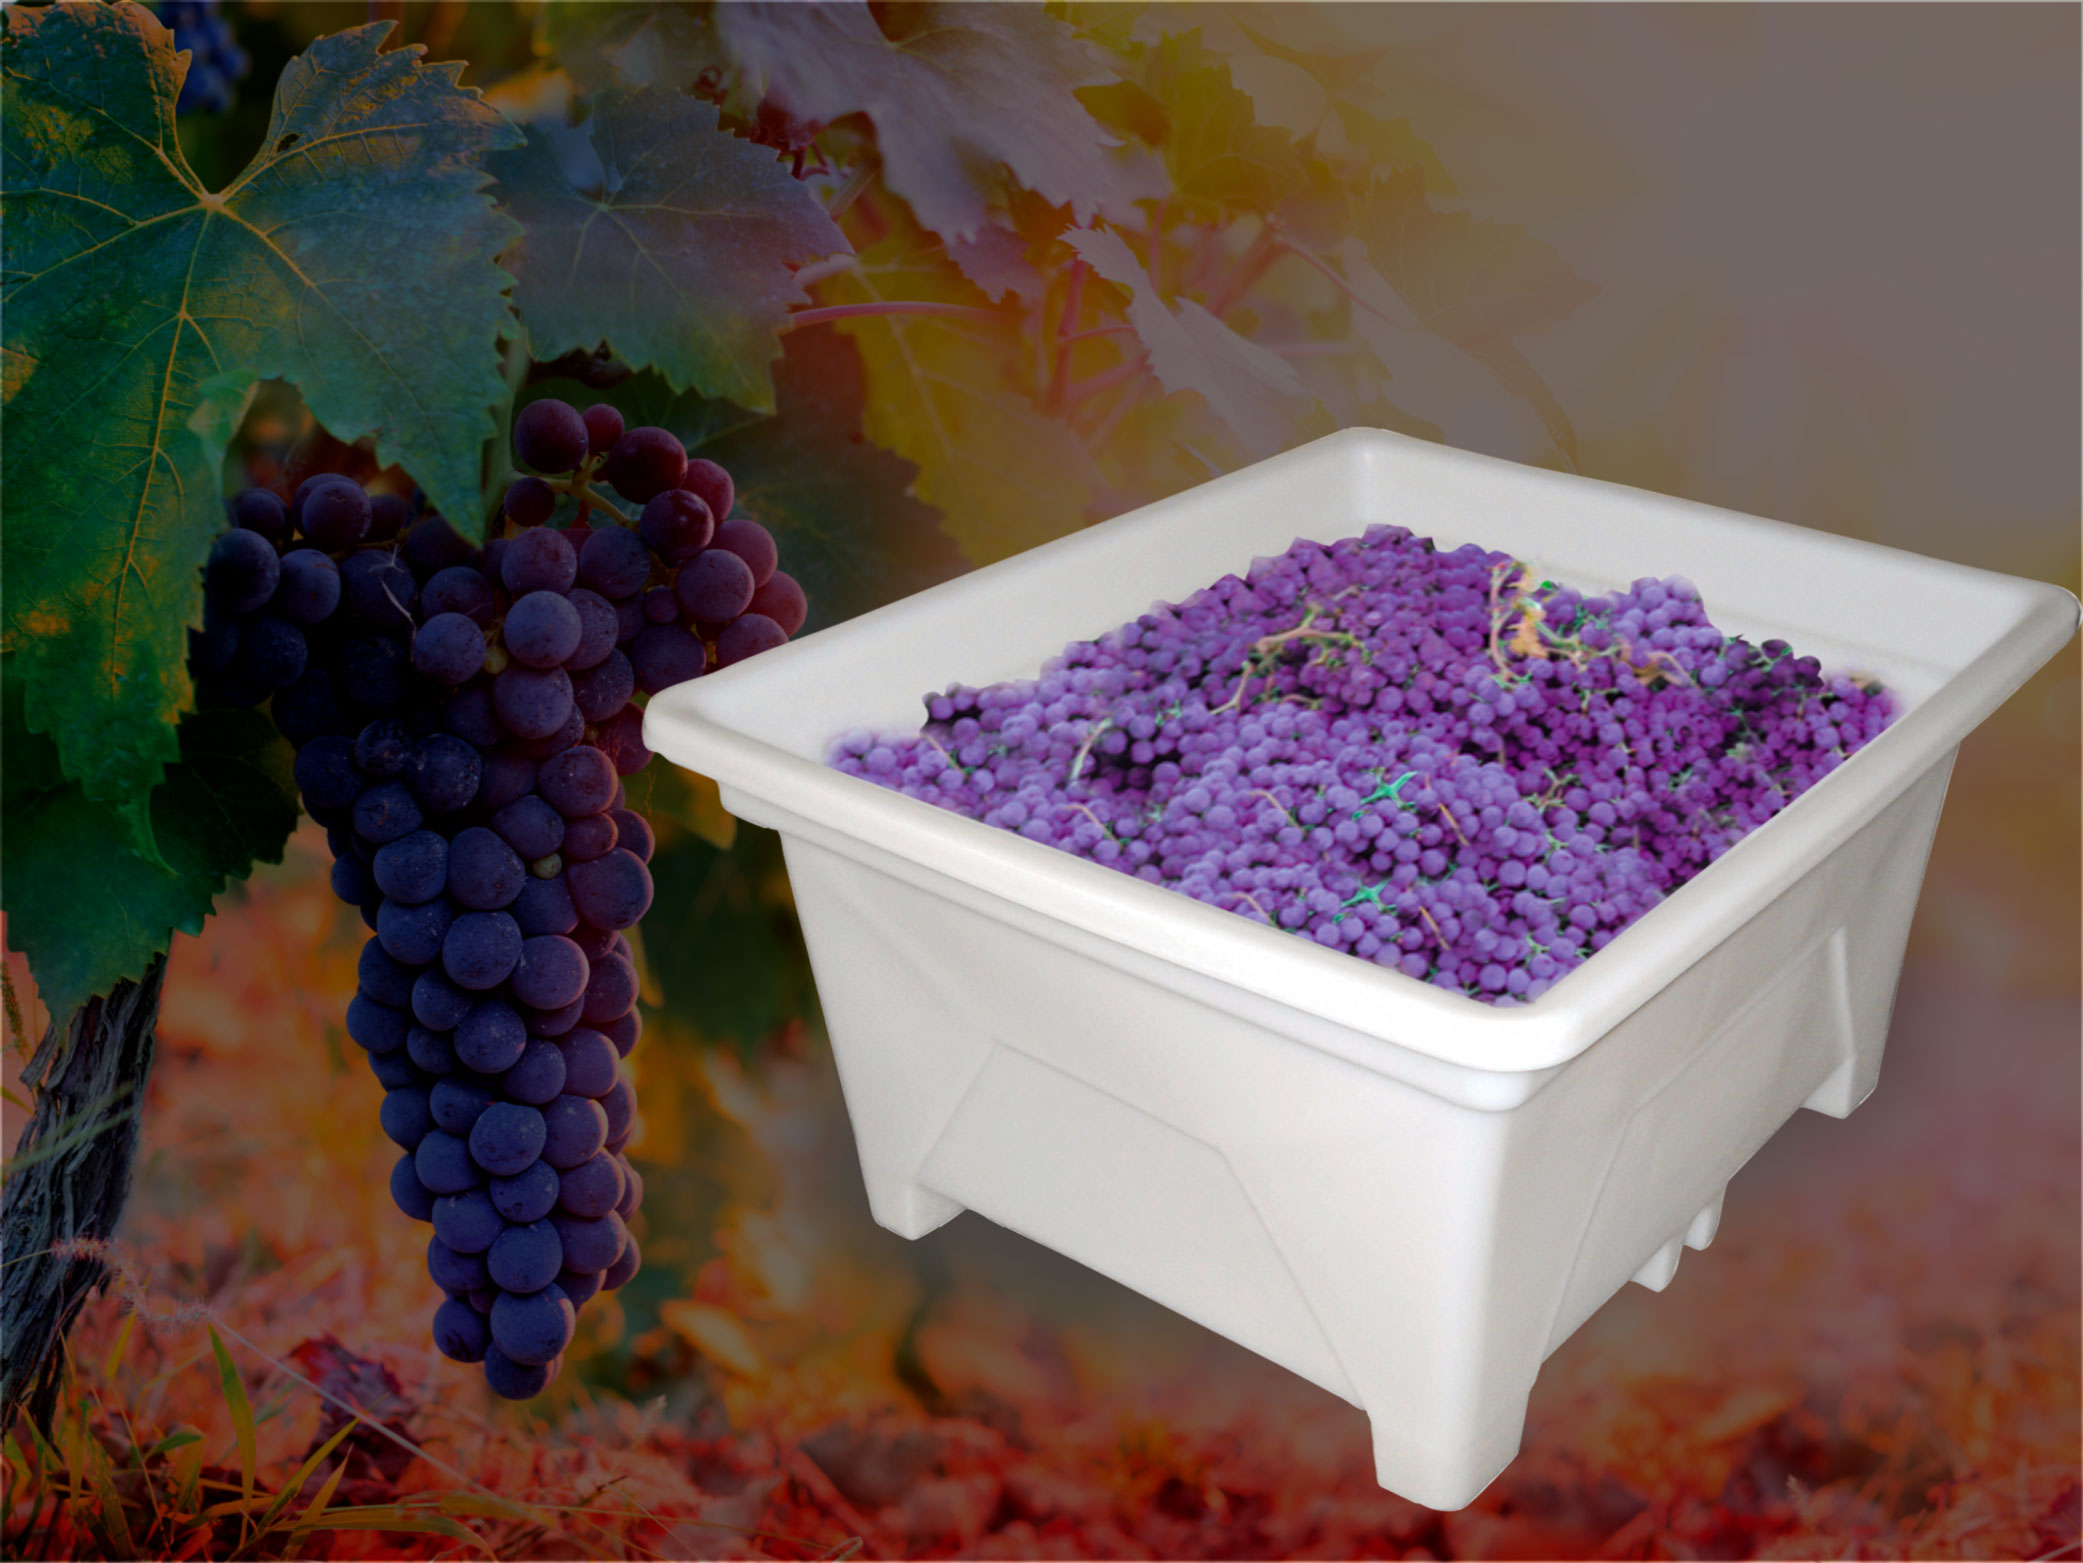 grape picking bin, bin full of grapes, plastic bin with grapes in it, supatuff bin, stackable harvesting bins